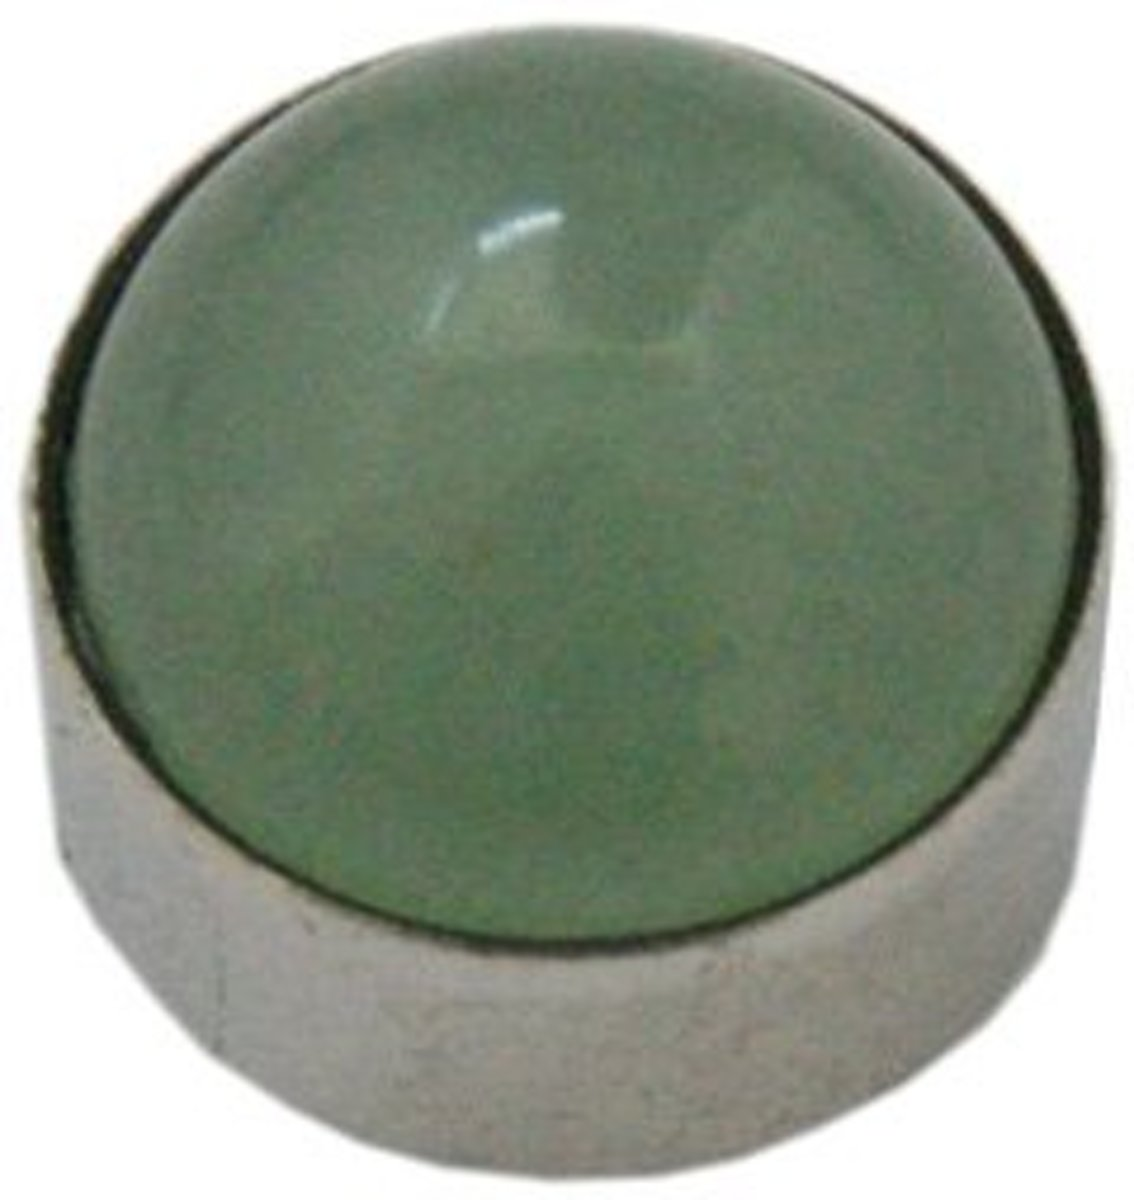 Metalen Ring element voor modulaire BREDE BASIS RING - Grote Groene Acryl Steen